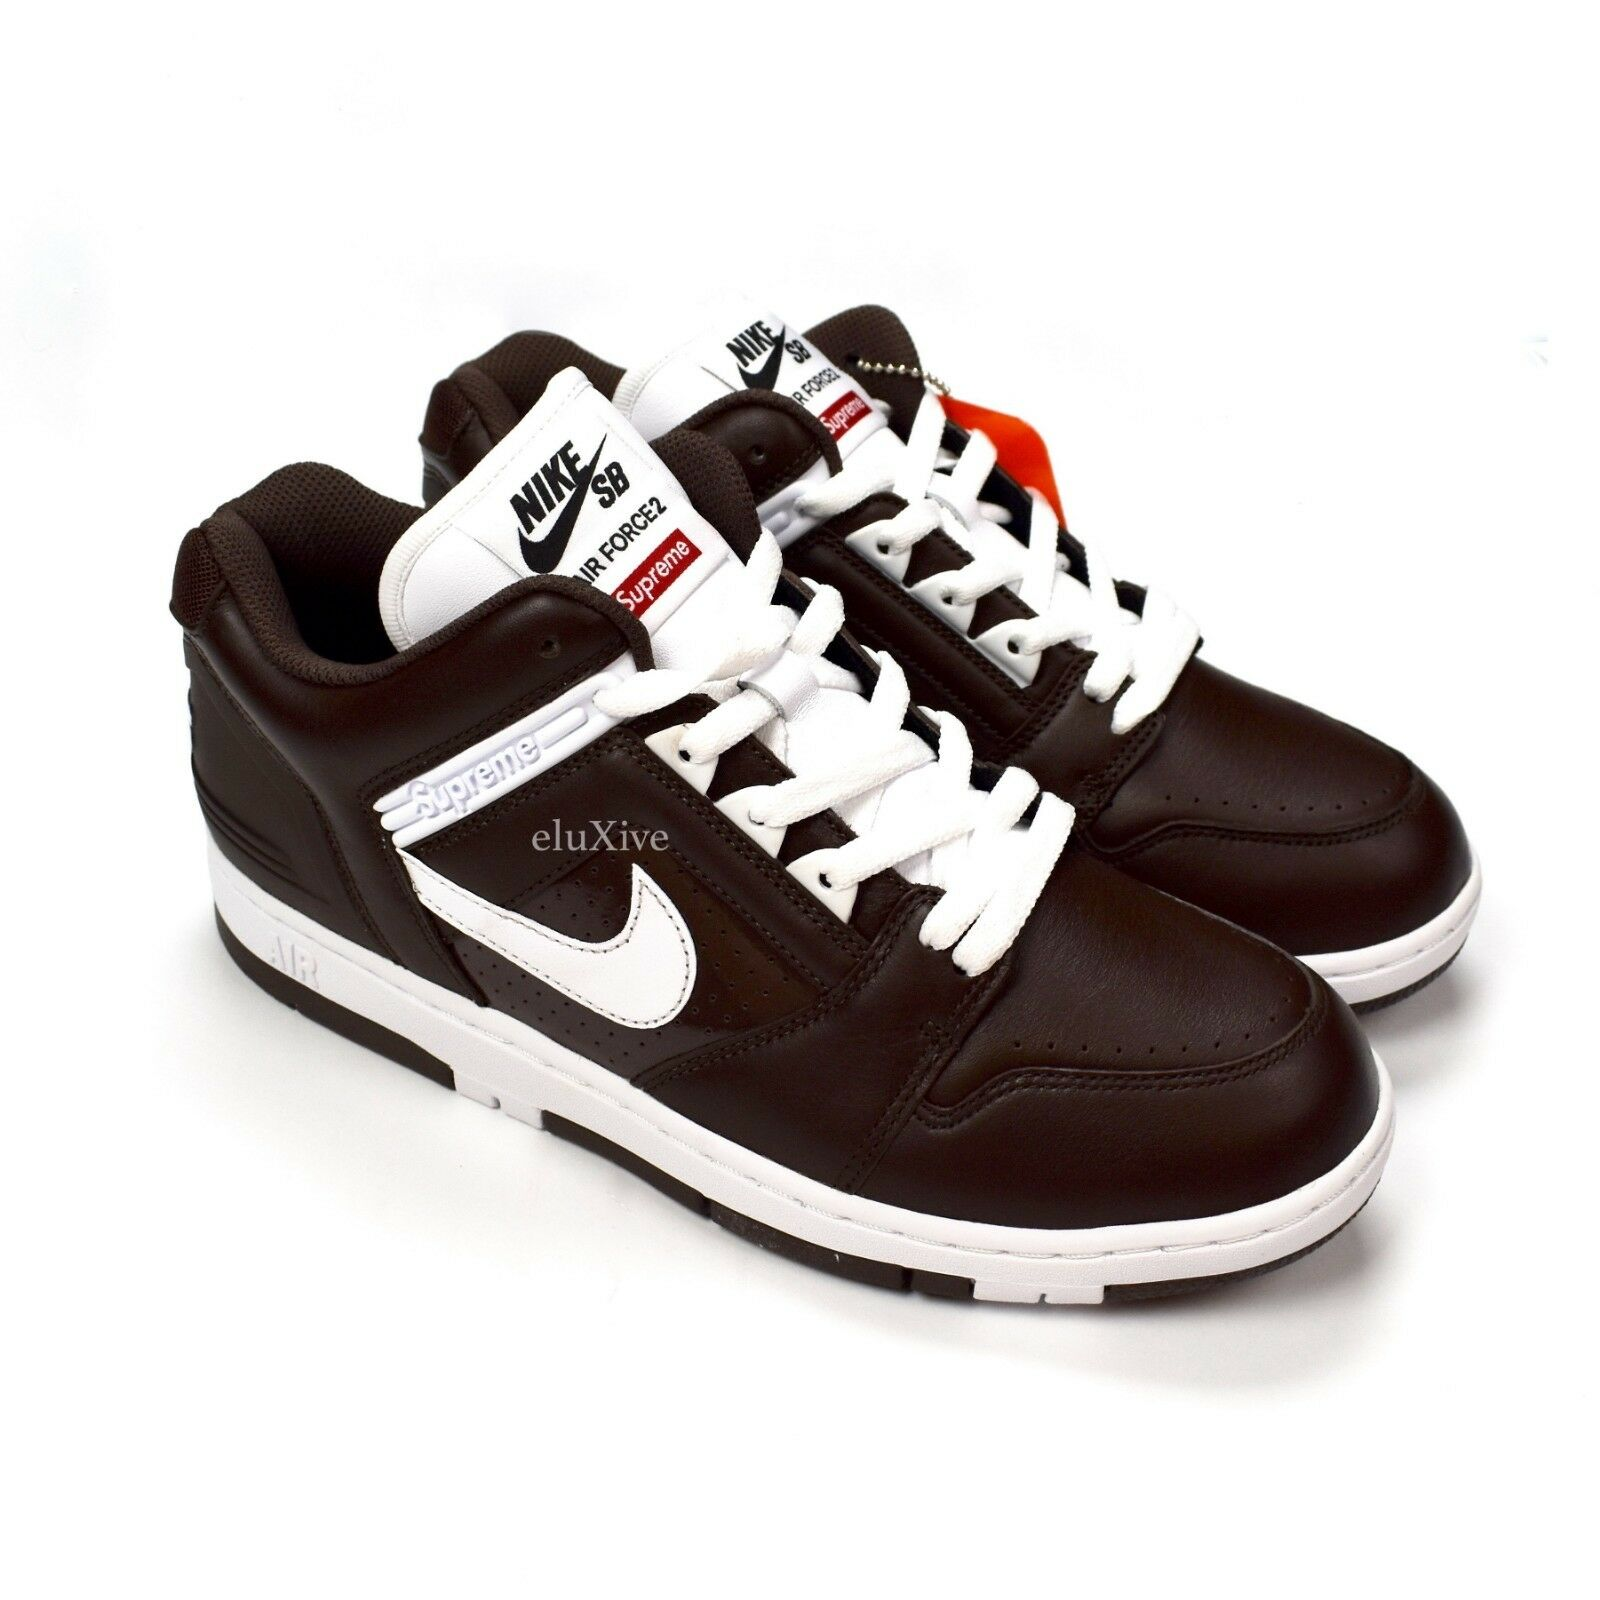 NWT Supreme Nike SB Air Force 2 AF2 Low Baroque Brown Sneaker 10 FW17 AUTHENTIC